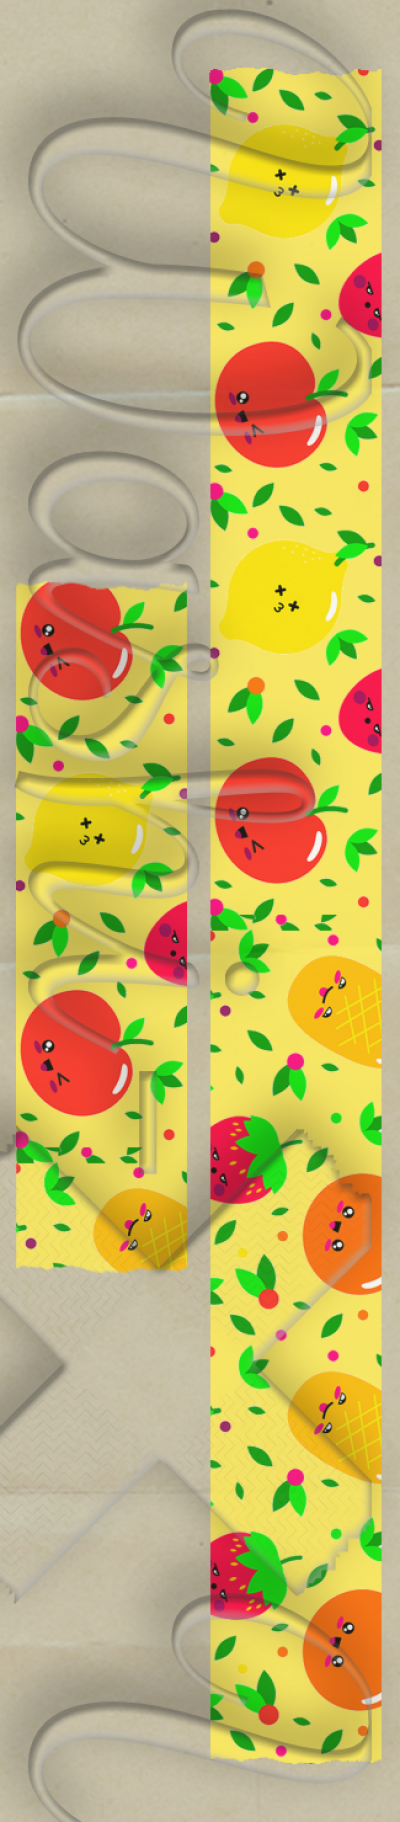 Fruits patterned washi tape